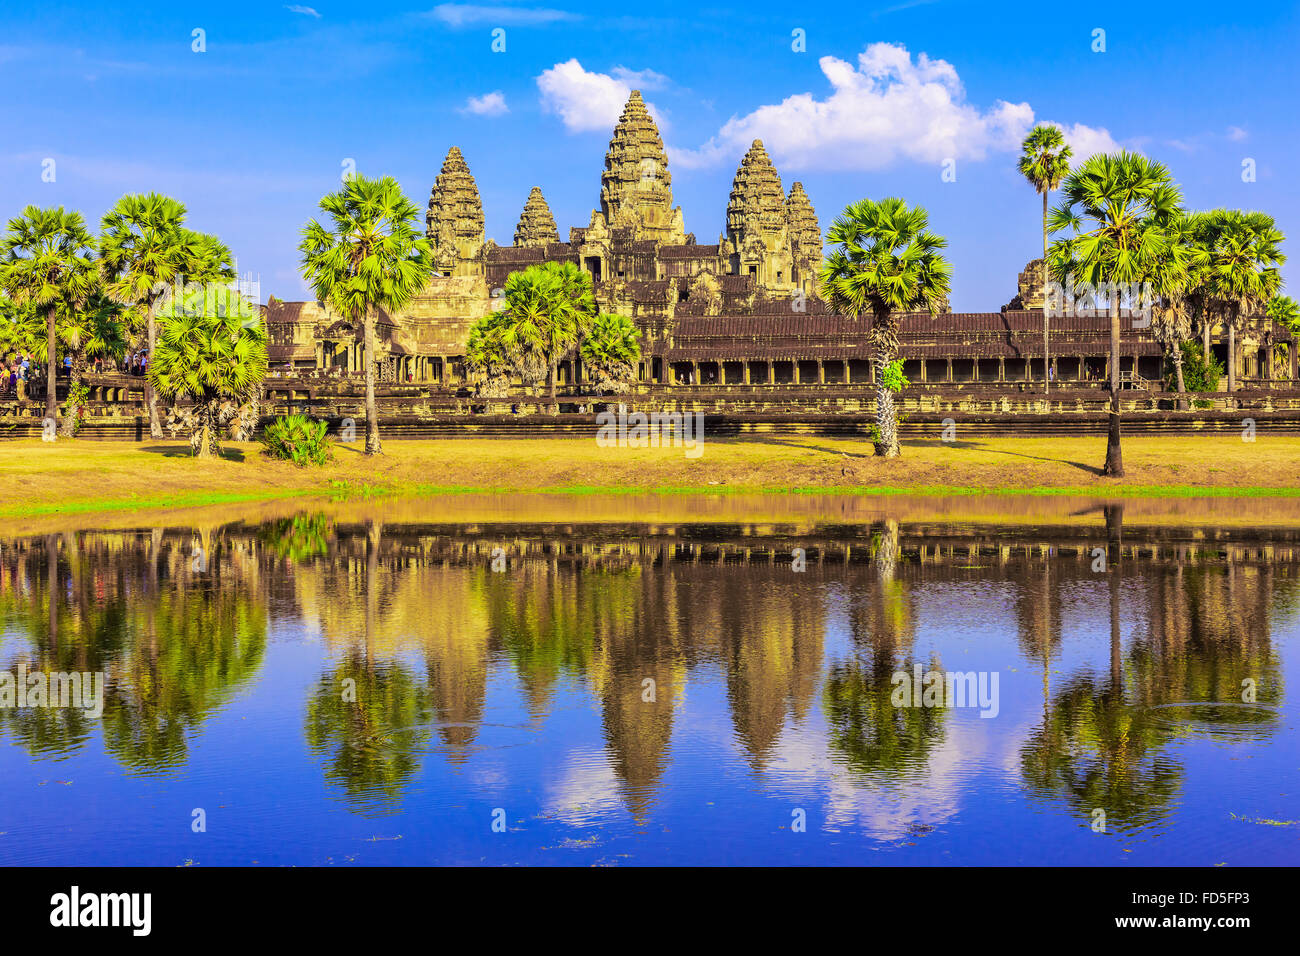 Angkor Wat, Siem Reap. Temple Khmer au Cambodge. Photo Stock